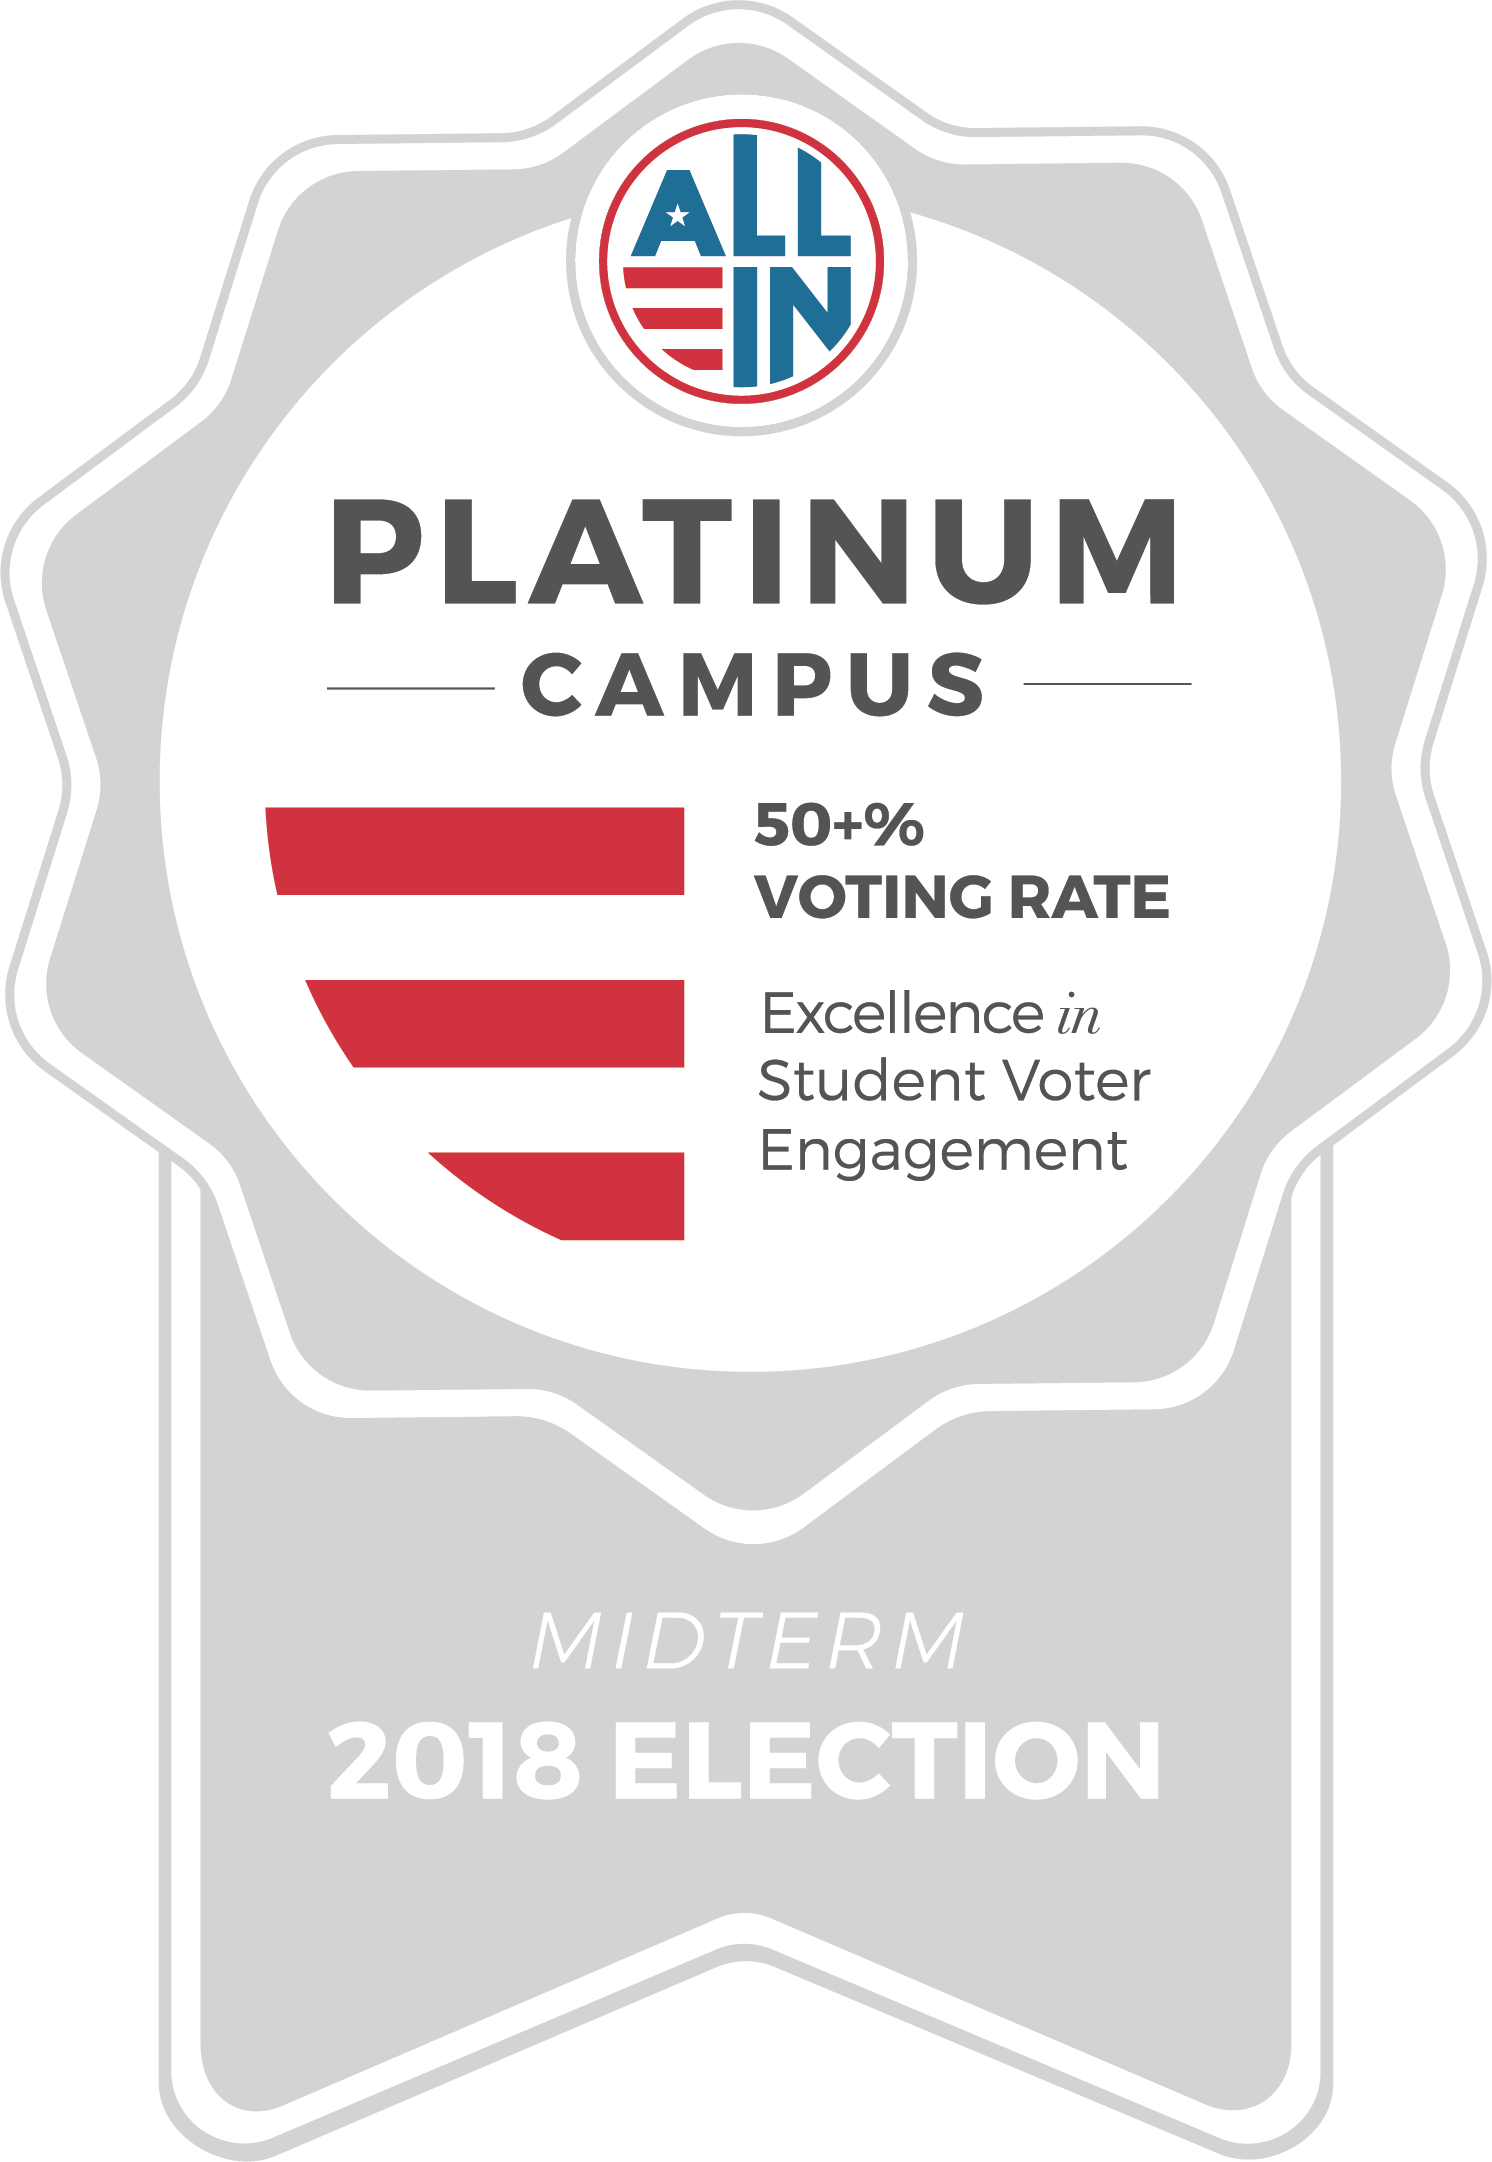 All In Campus Democracy Challenge Platinum Seal 2018 Midterm Election